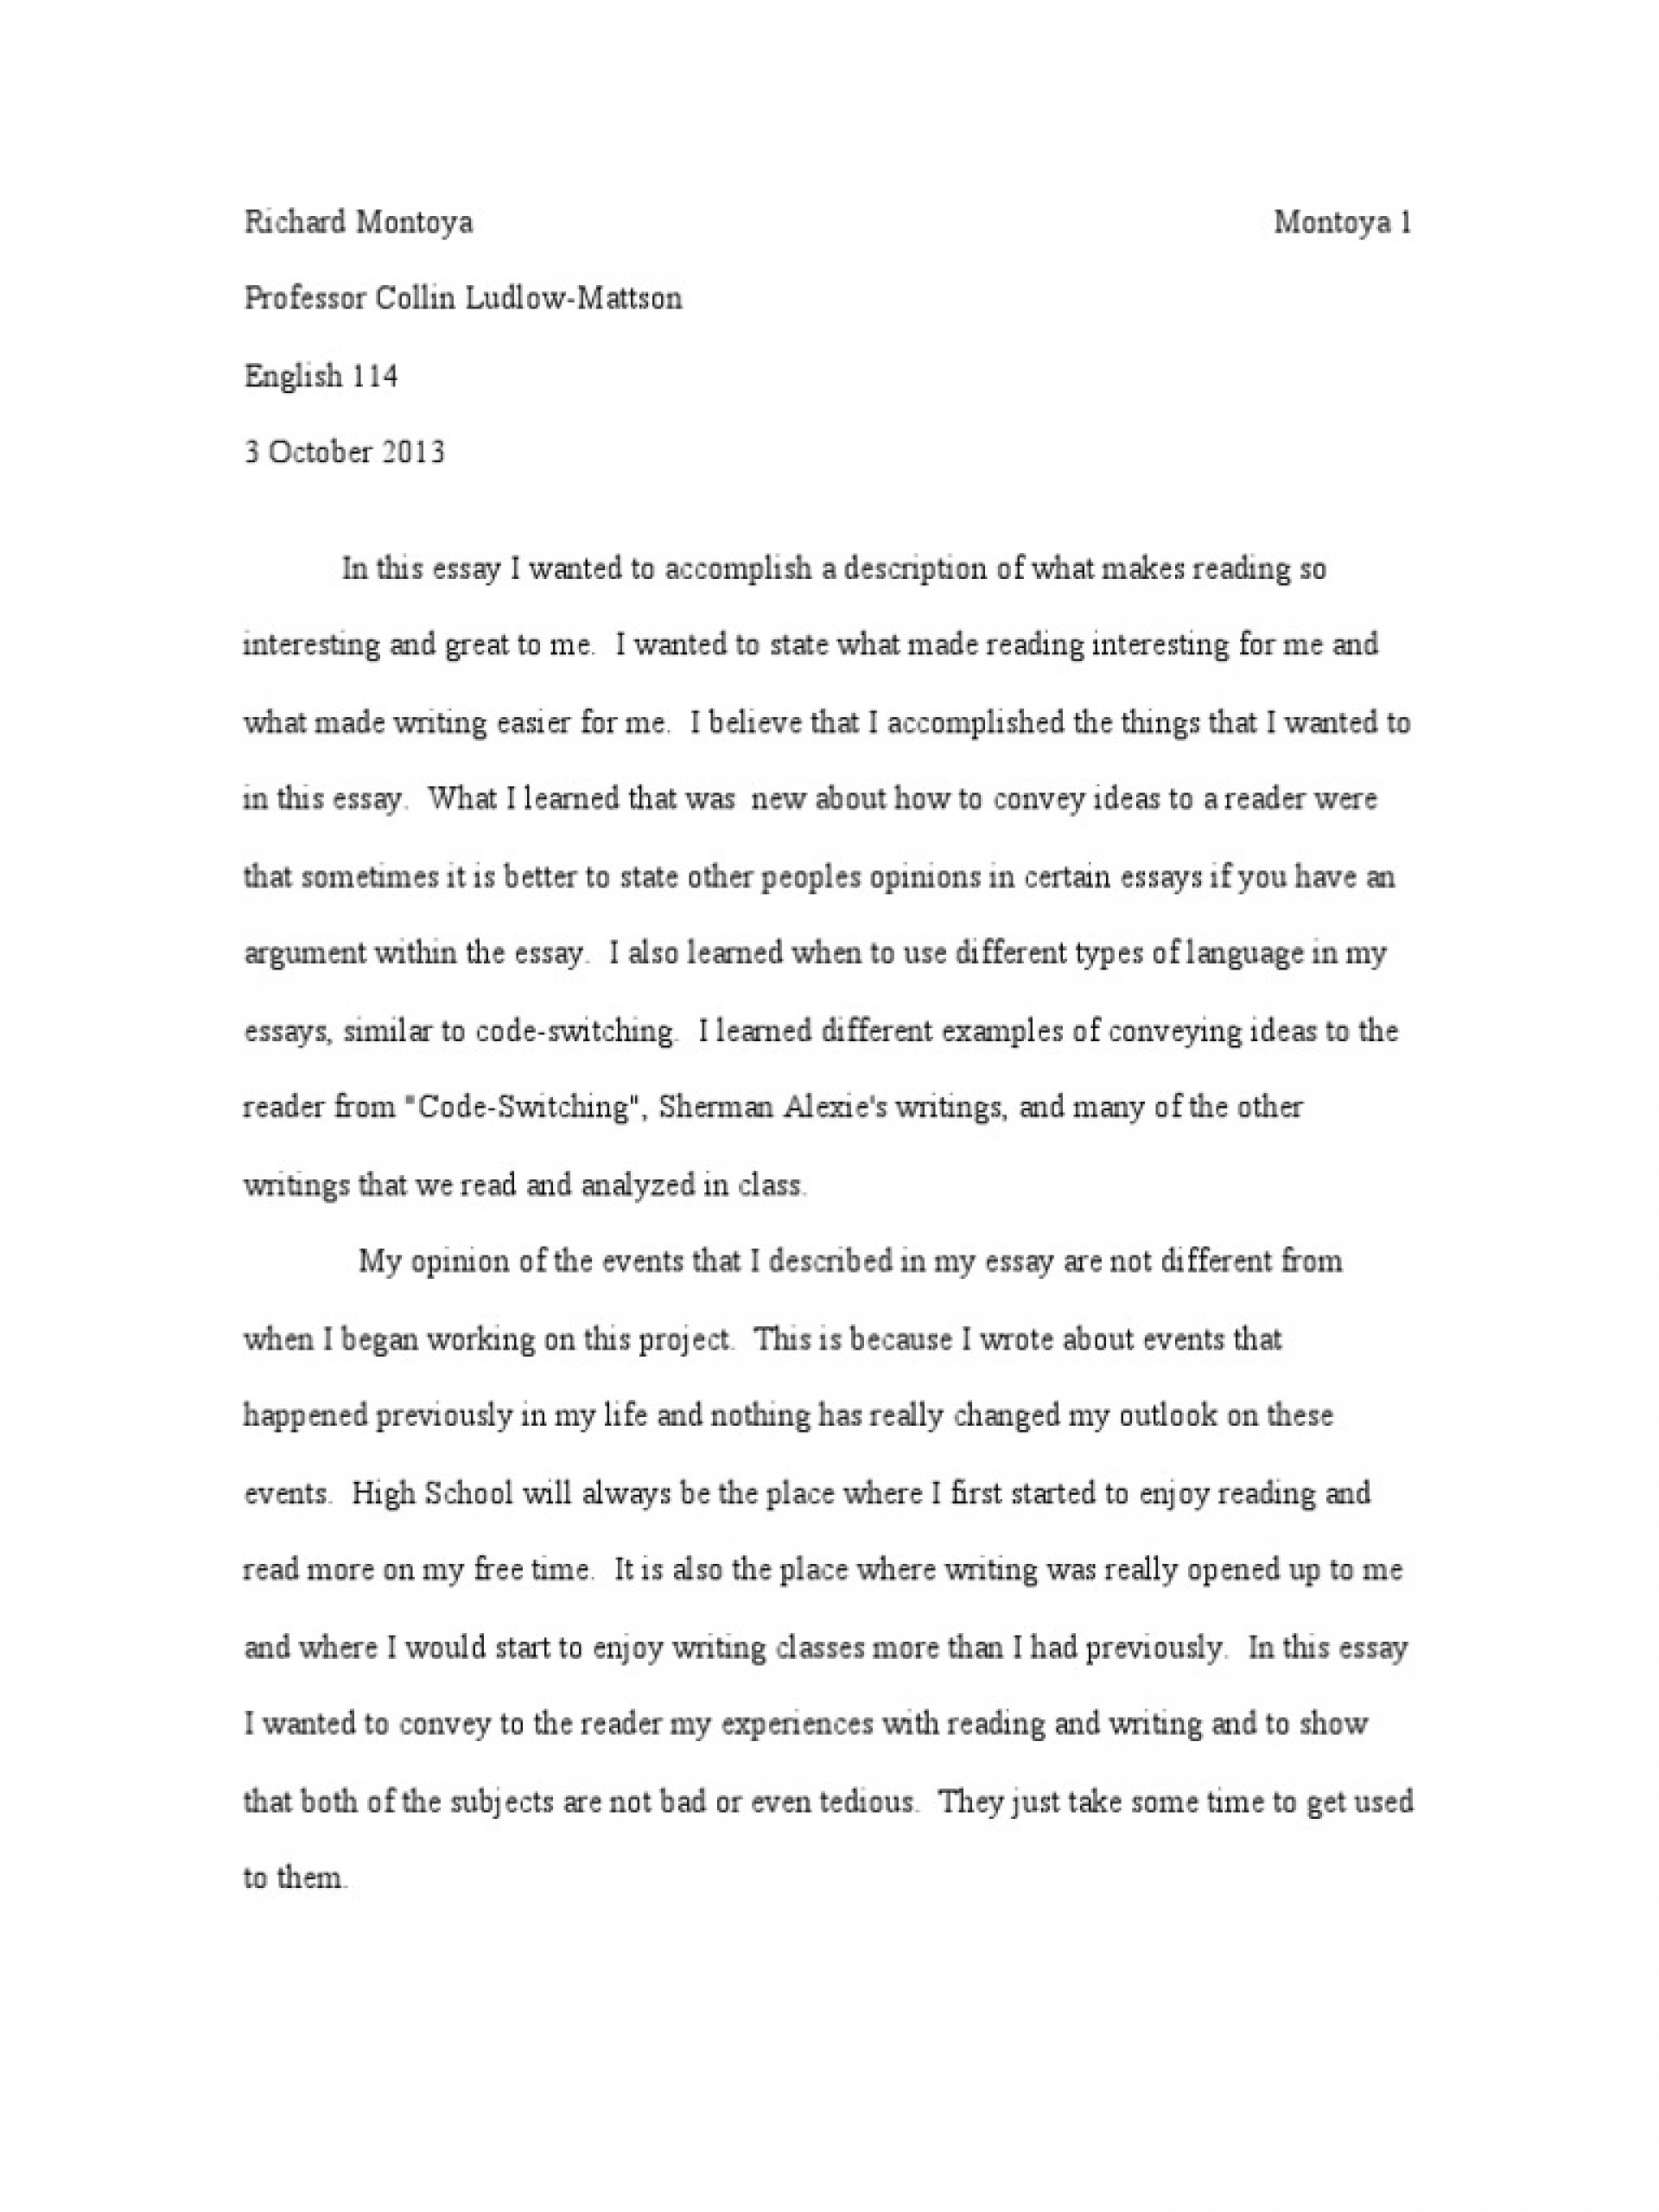 016 Essay Example Literacy Narrative Final Draft Revised Essays Homework How My Writing Has Changed Self Phenomenal Personal Examples Sample Digital 1920